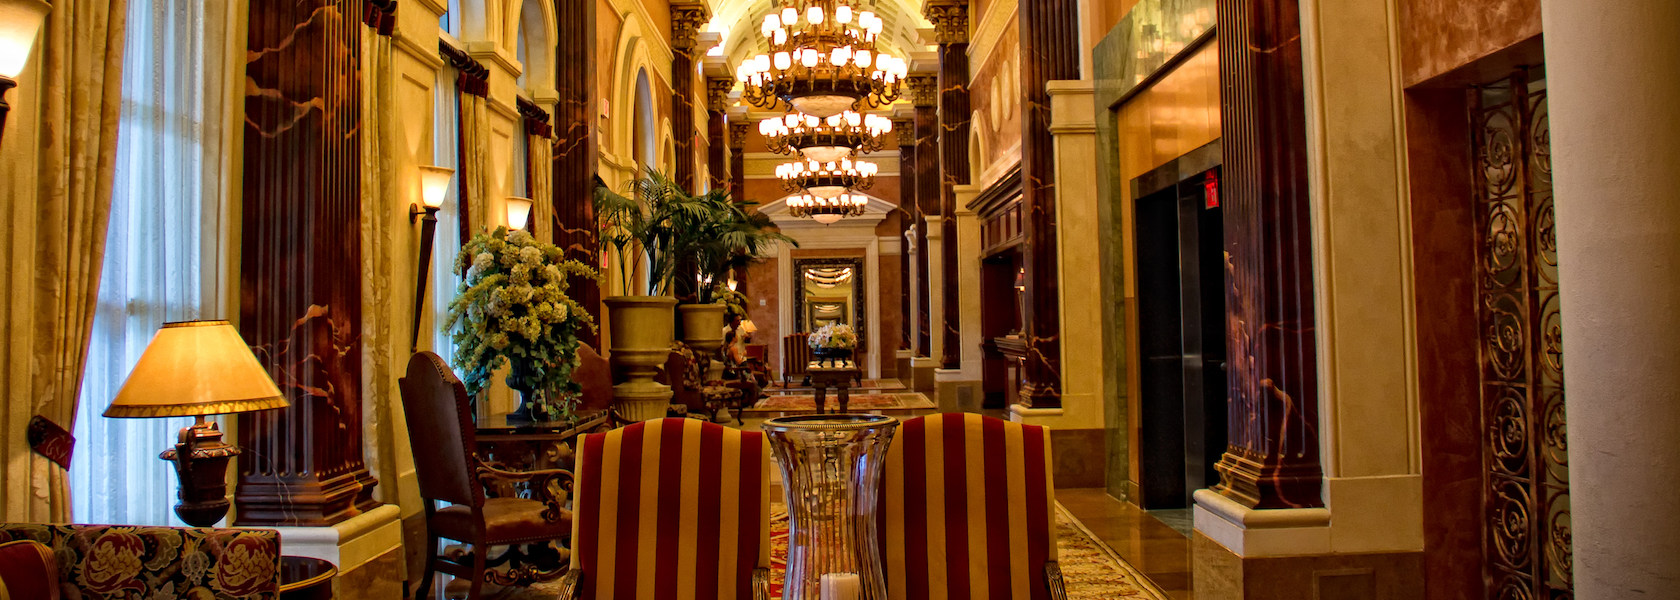 Opulent gold and red lobby with chandeliers at Acqualina Resort & Spa